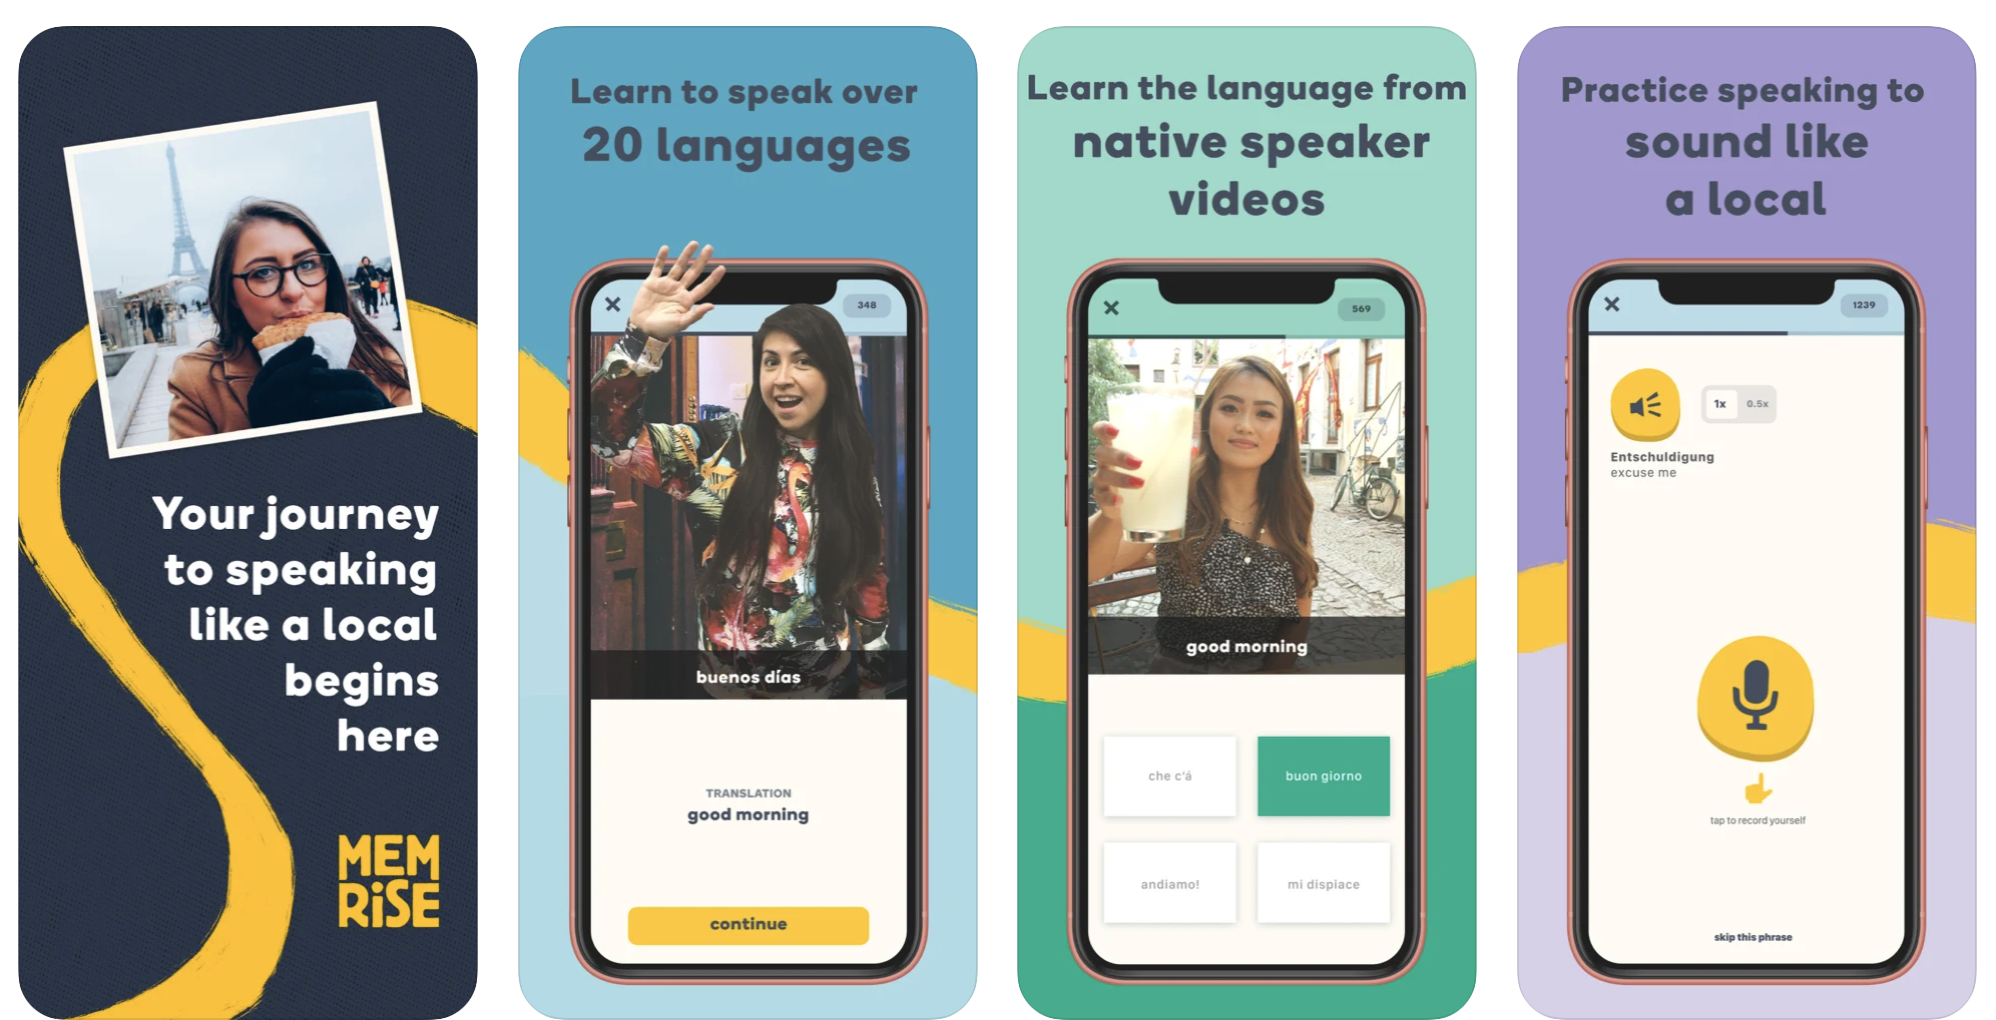 Meilleures applications d'apprentissage des langues iPhone - Memrise